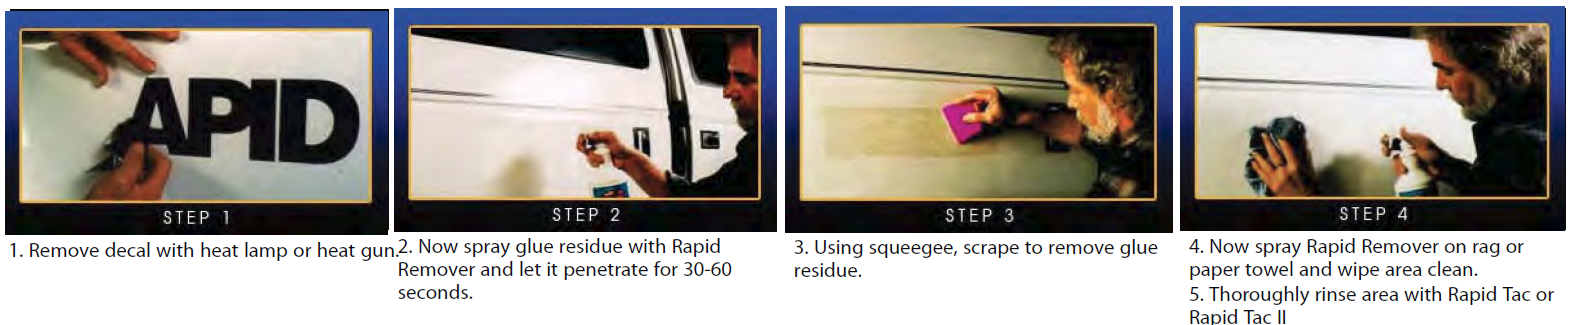 rapid remover directions - Rapid Tac Products - Application Fluid - Remover